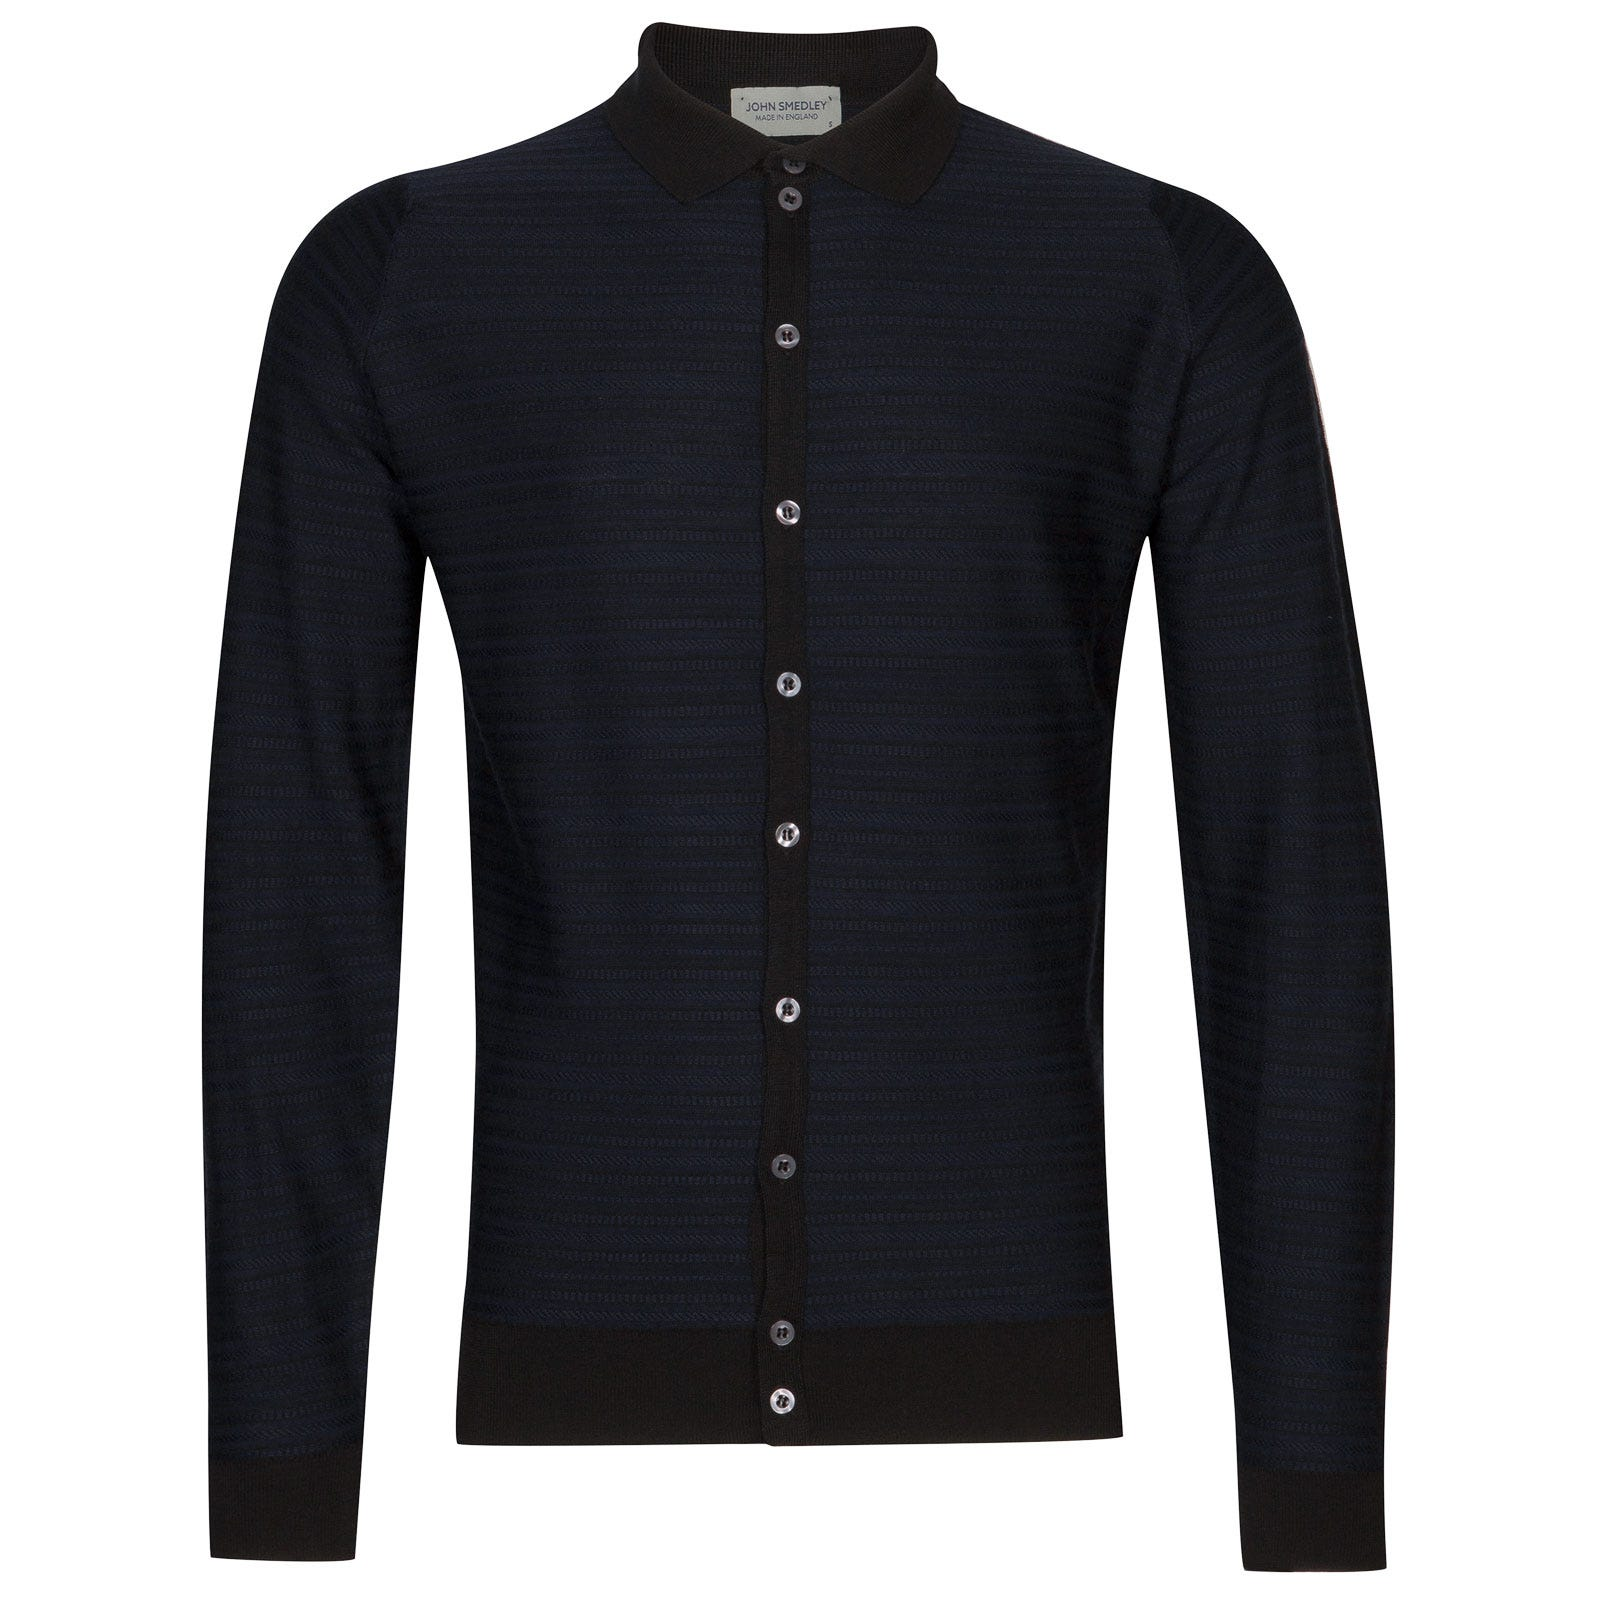 John Smedley hemlock Merino Wool Shirt in Black/Midnight-S